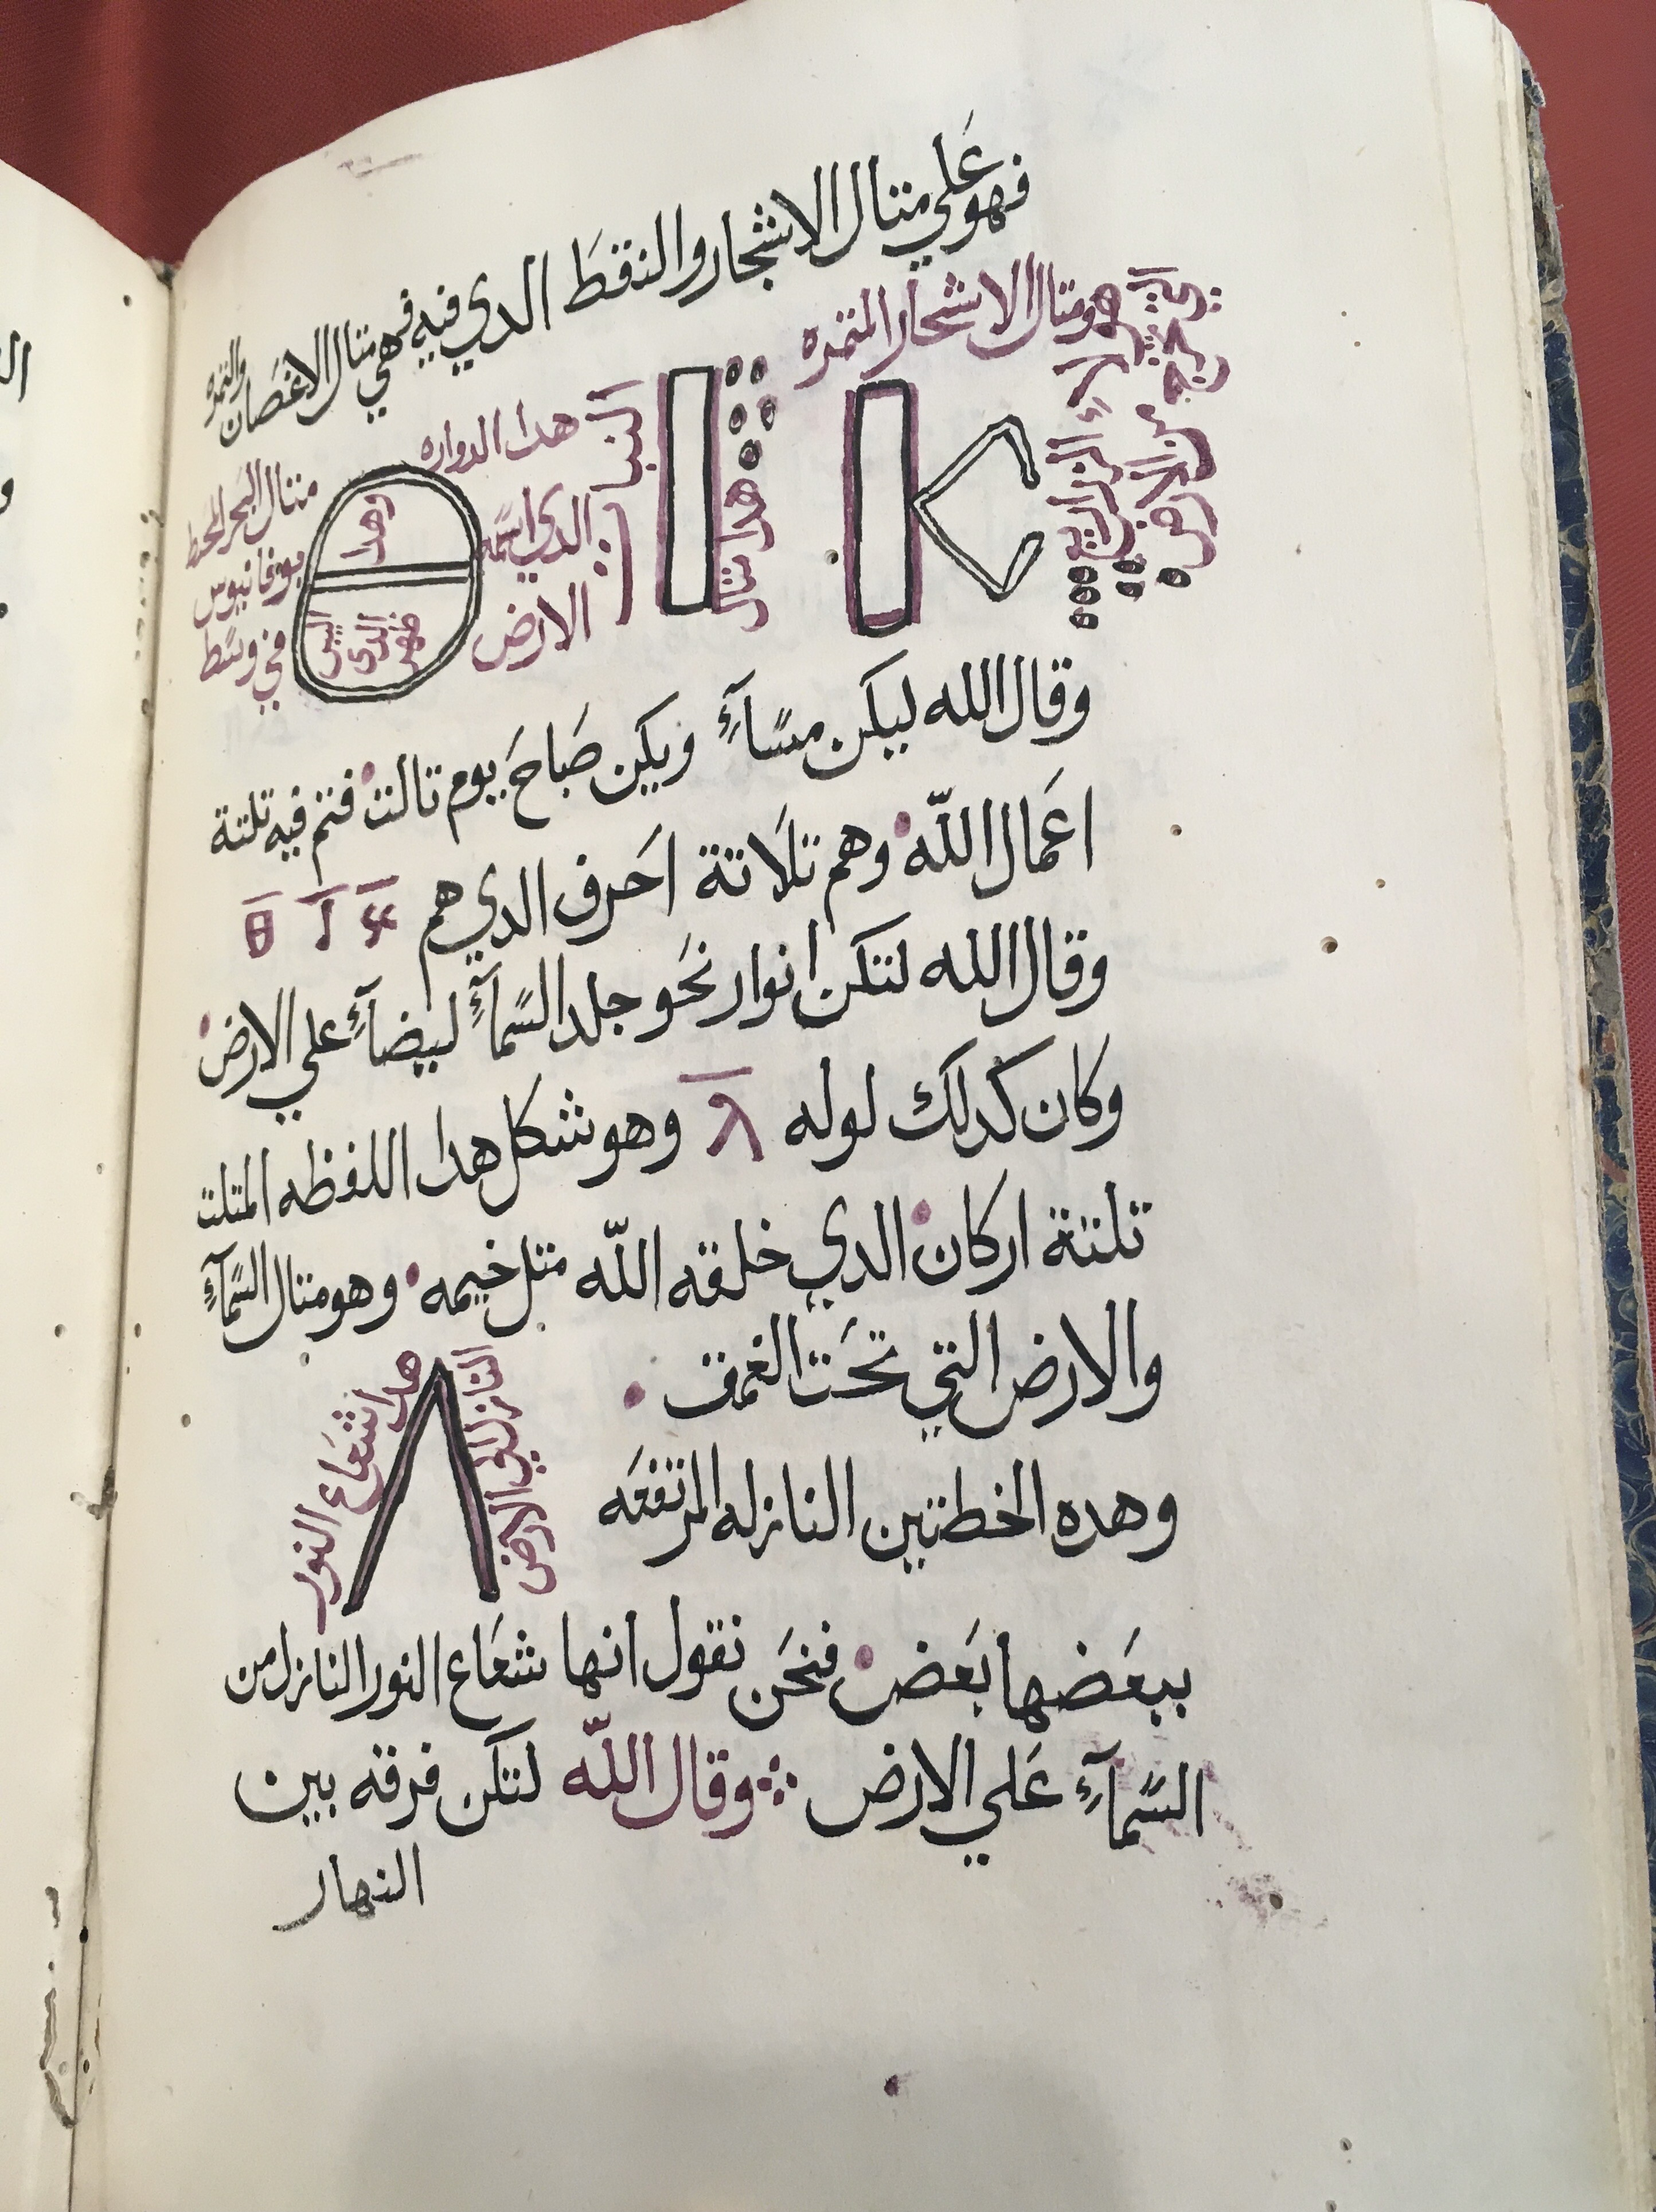 An image of a manuscript page with Arabic text in black ink and illustrations of four Greek letters in red and black ink.